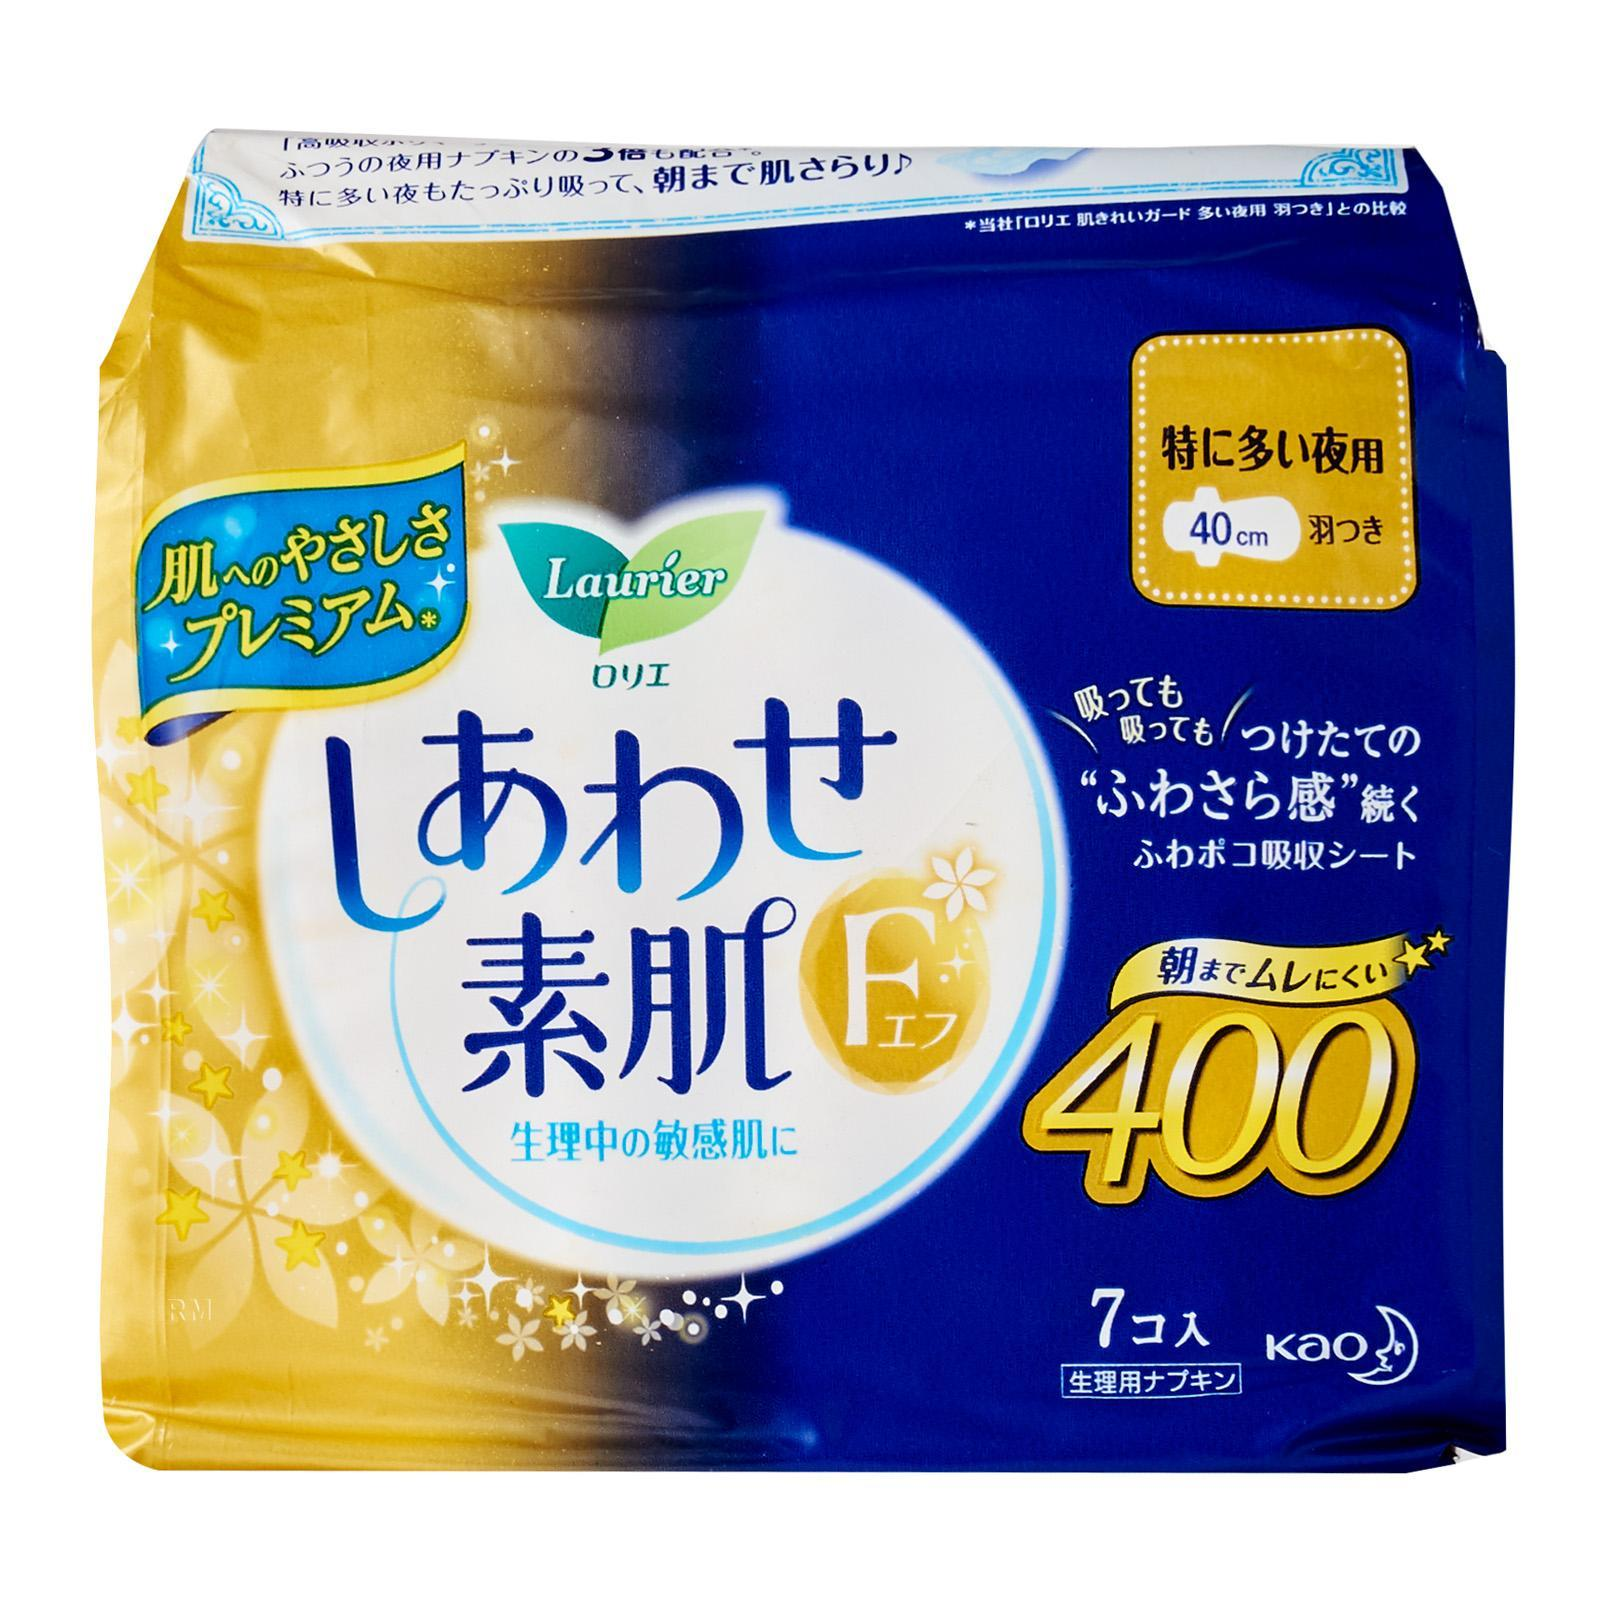 Laurier Shiawase Ultra Gentle F Super Soft And Absorbant Night Wing Sanitary Pads 40cm - Made in Japan